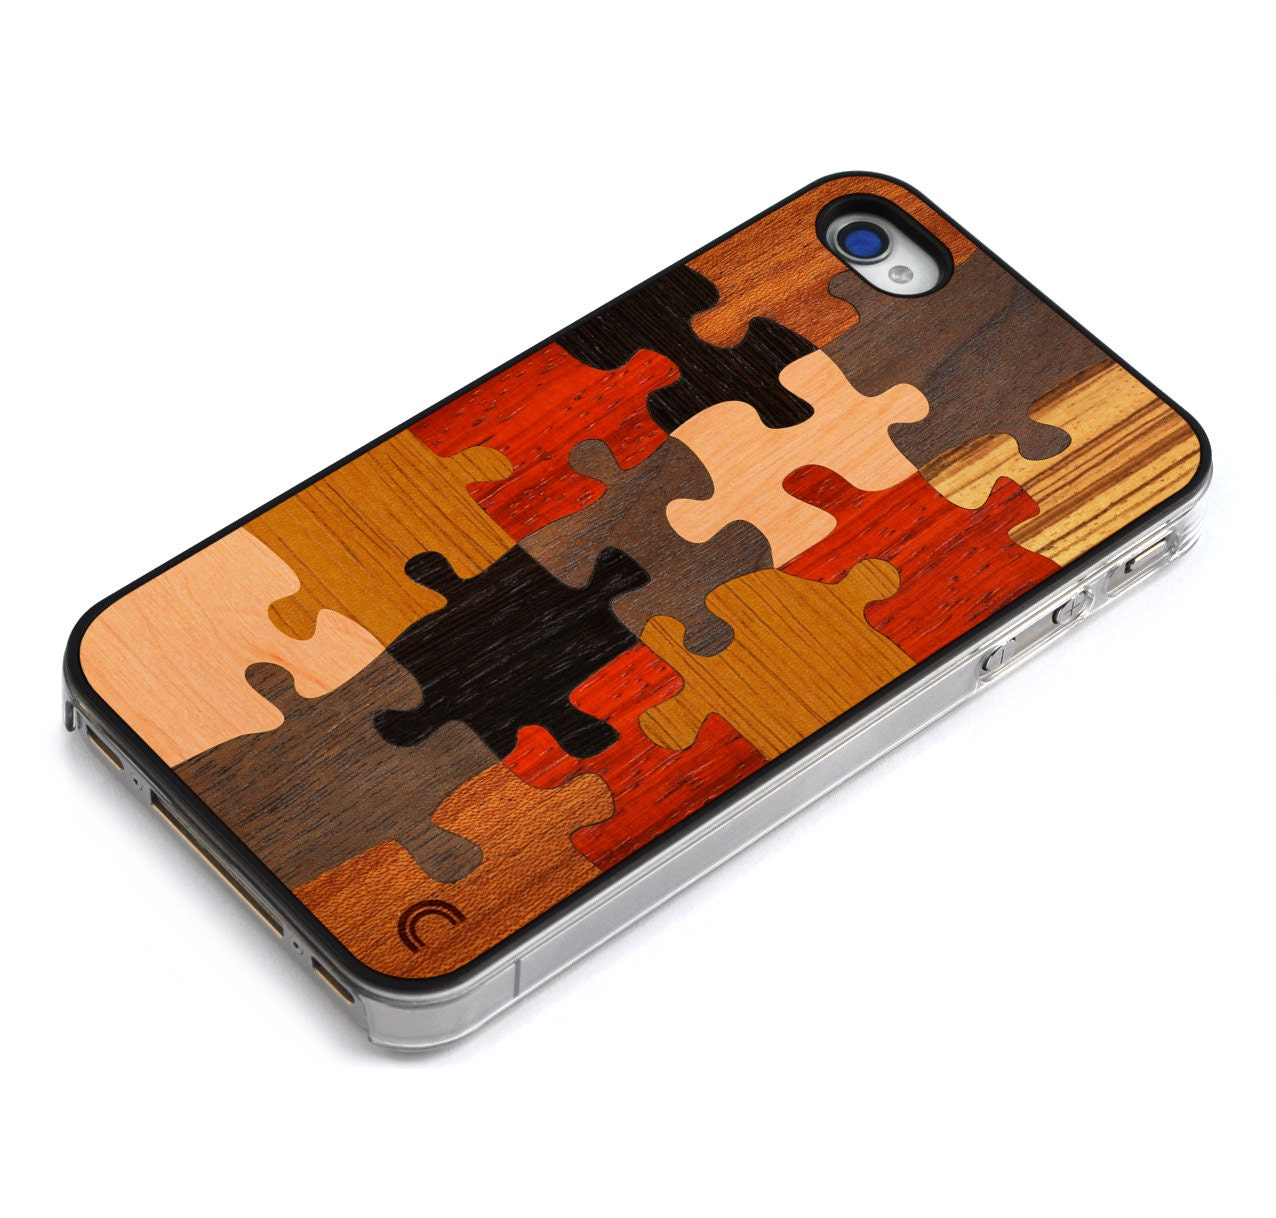 puzzle iphone 4 4s wood case puzzle iphone 4 4s by craftedcover. Black Bedroom Furniture Sets. Home Design Ideas